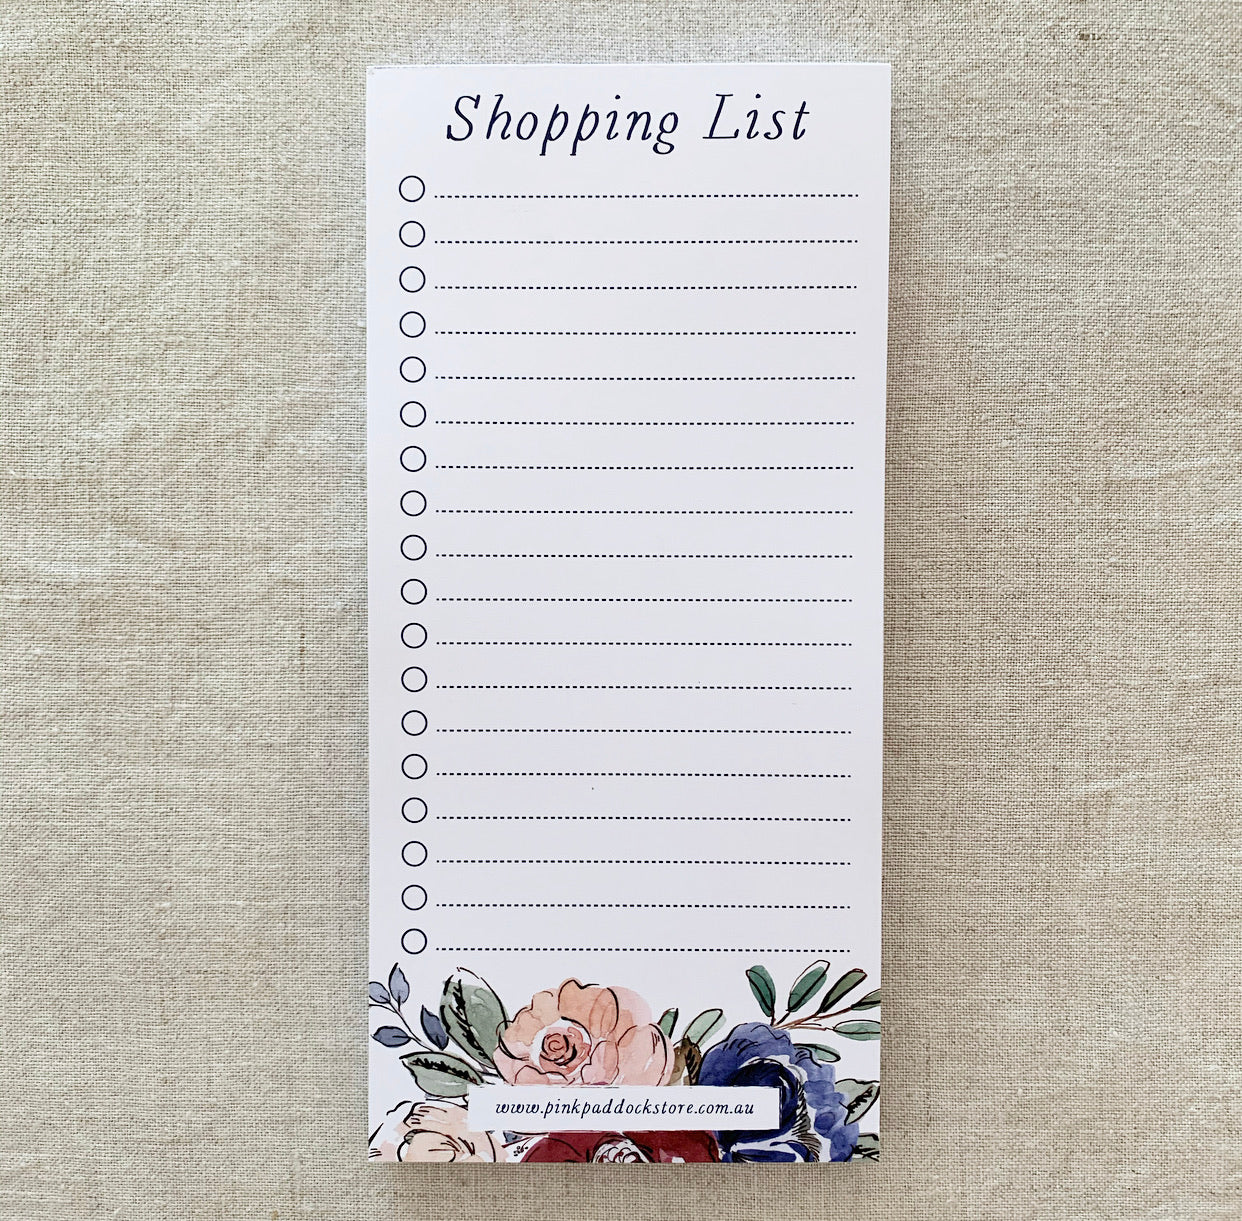 Rose 'Shopping List' DL Notepad